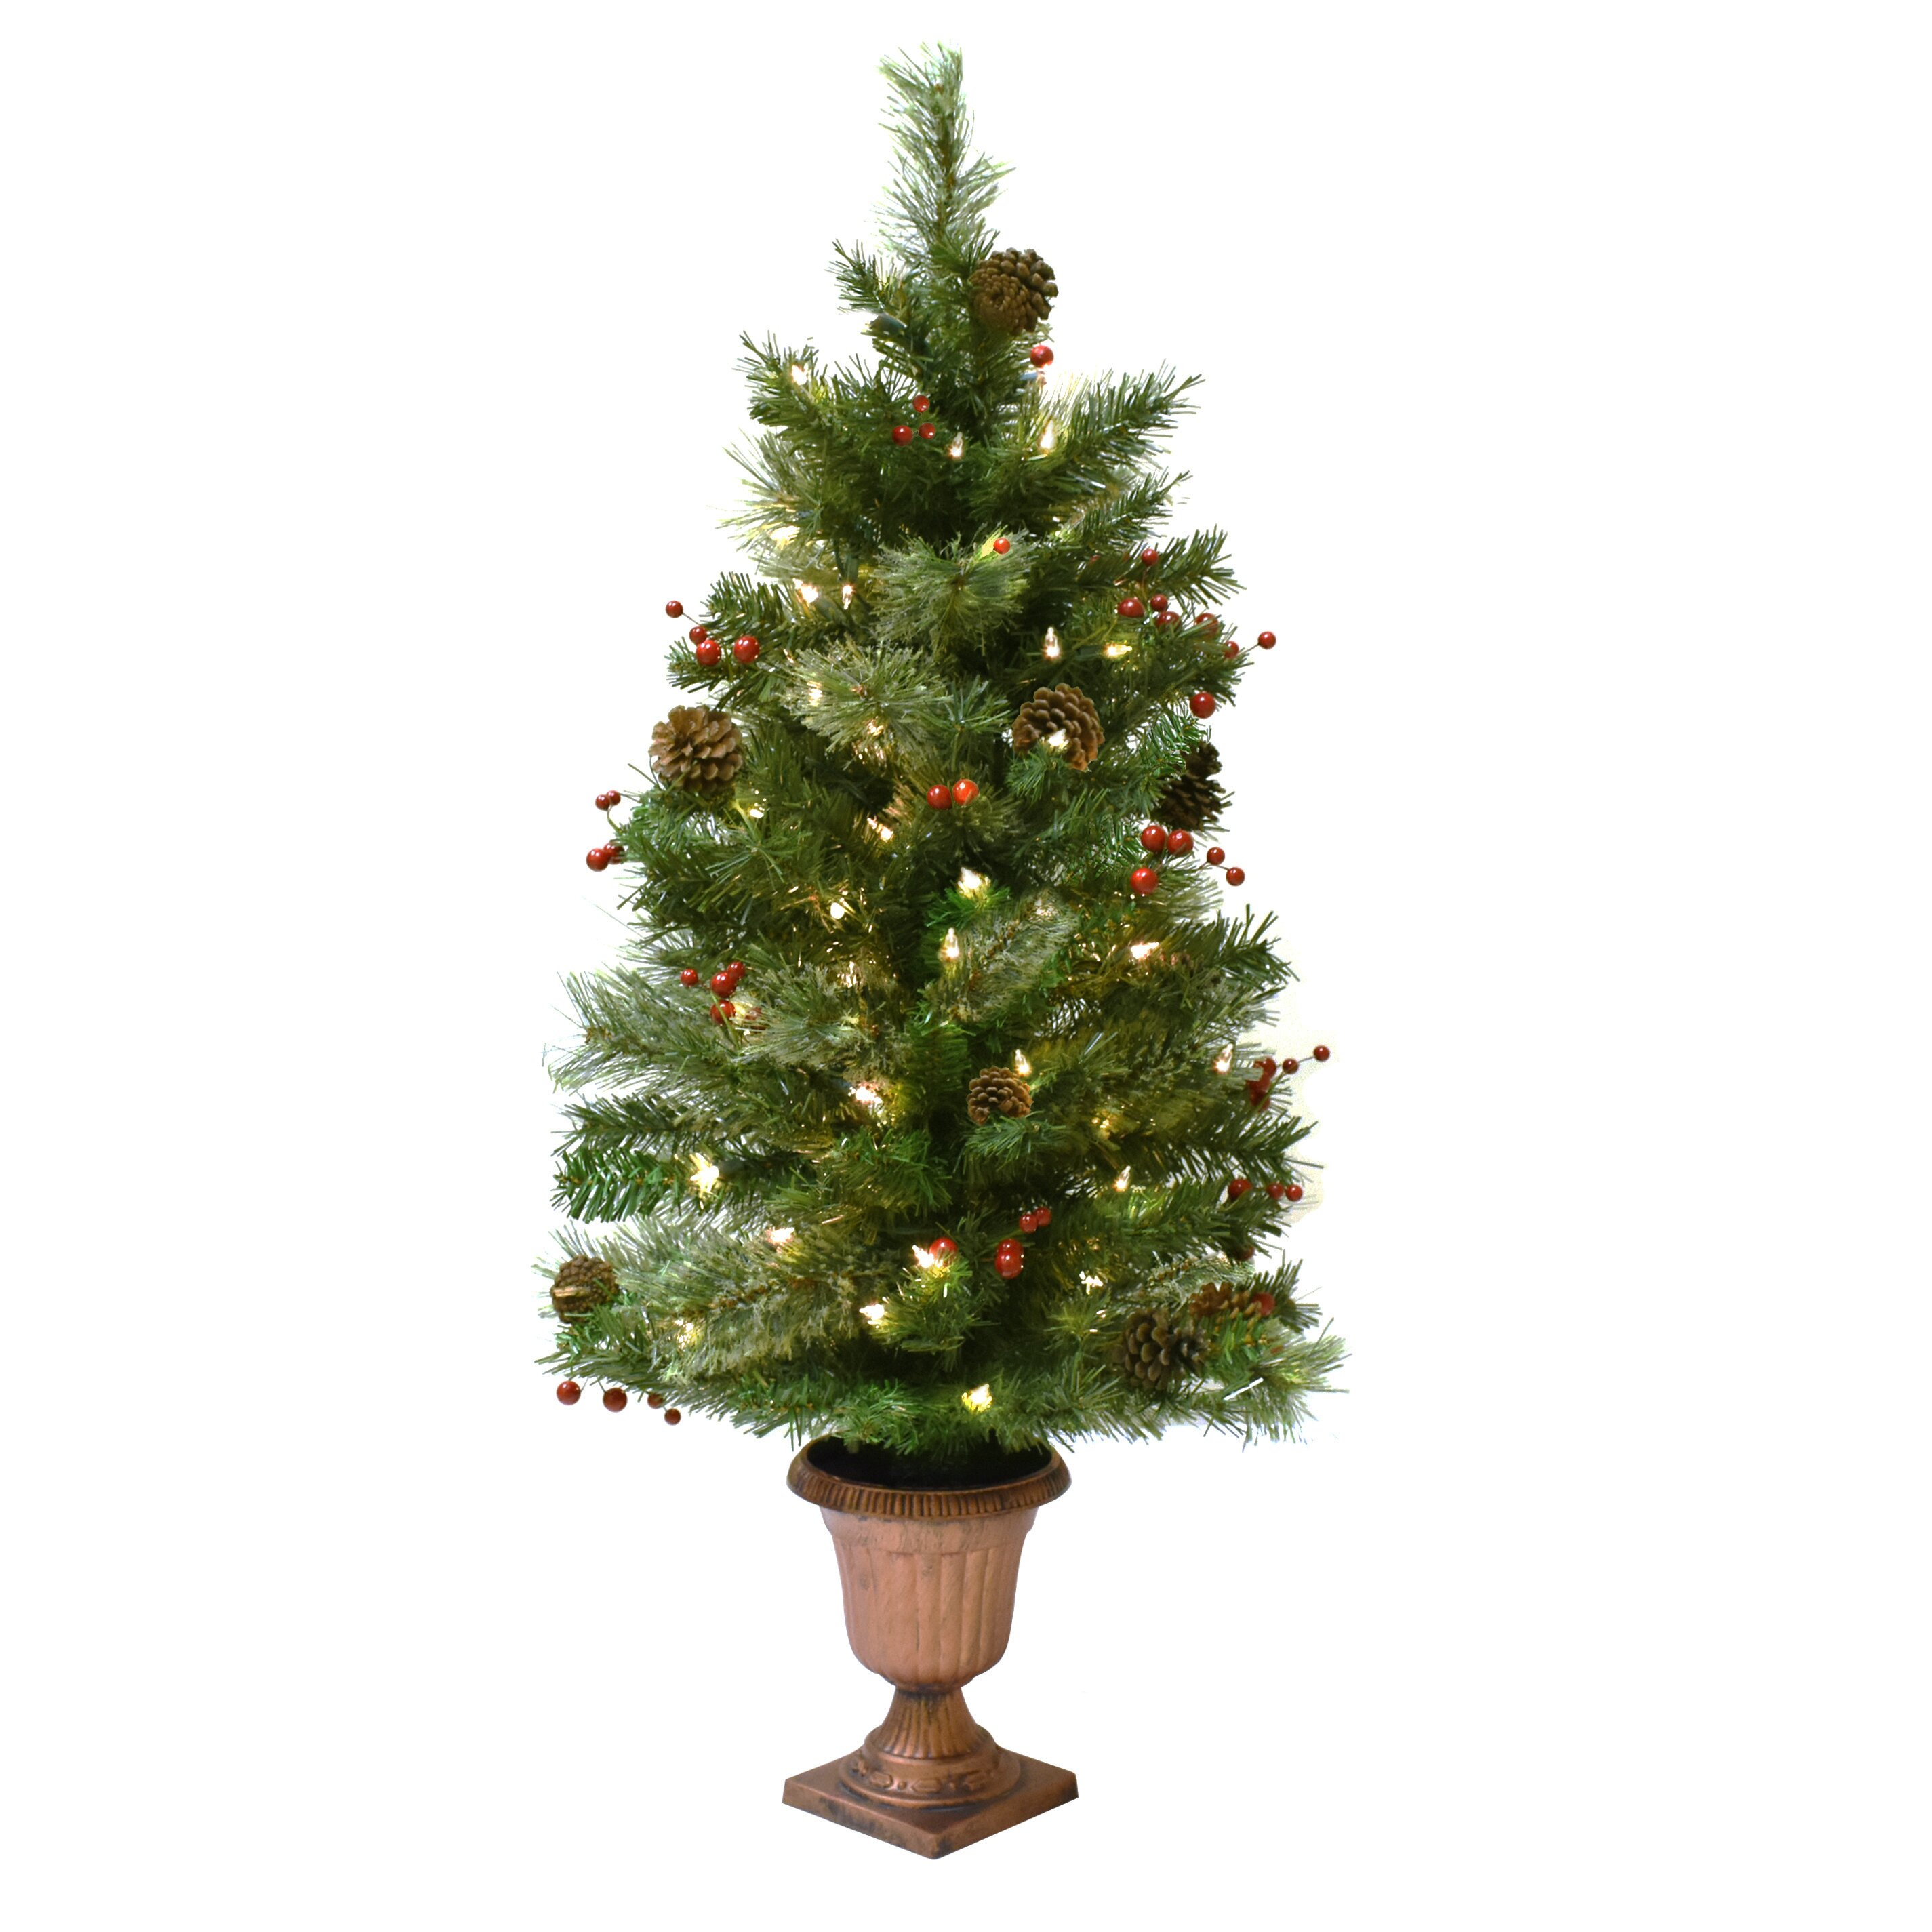 Astella green artificial christmas tree with lights